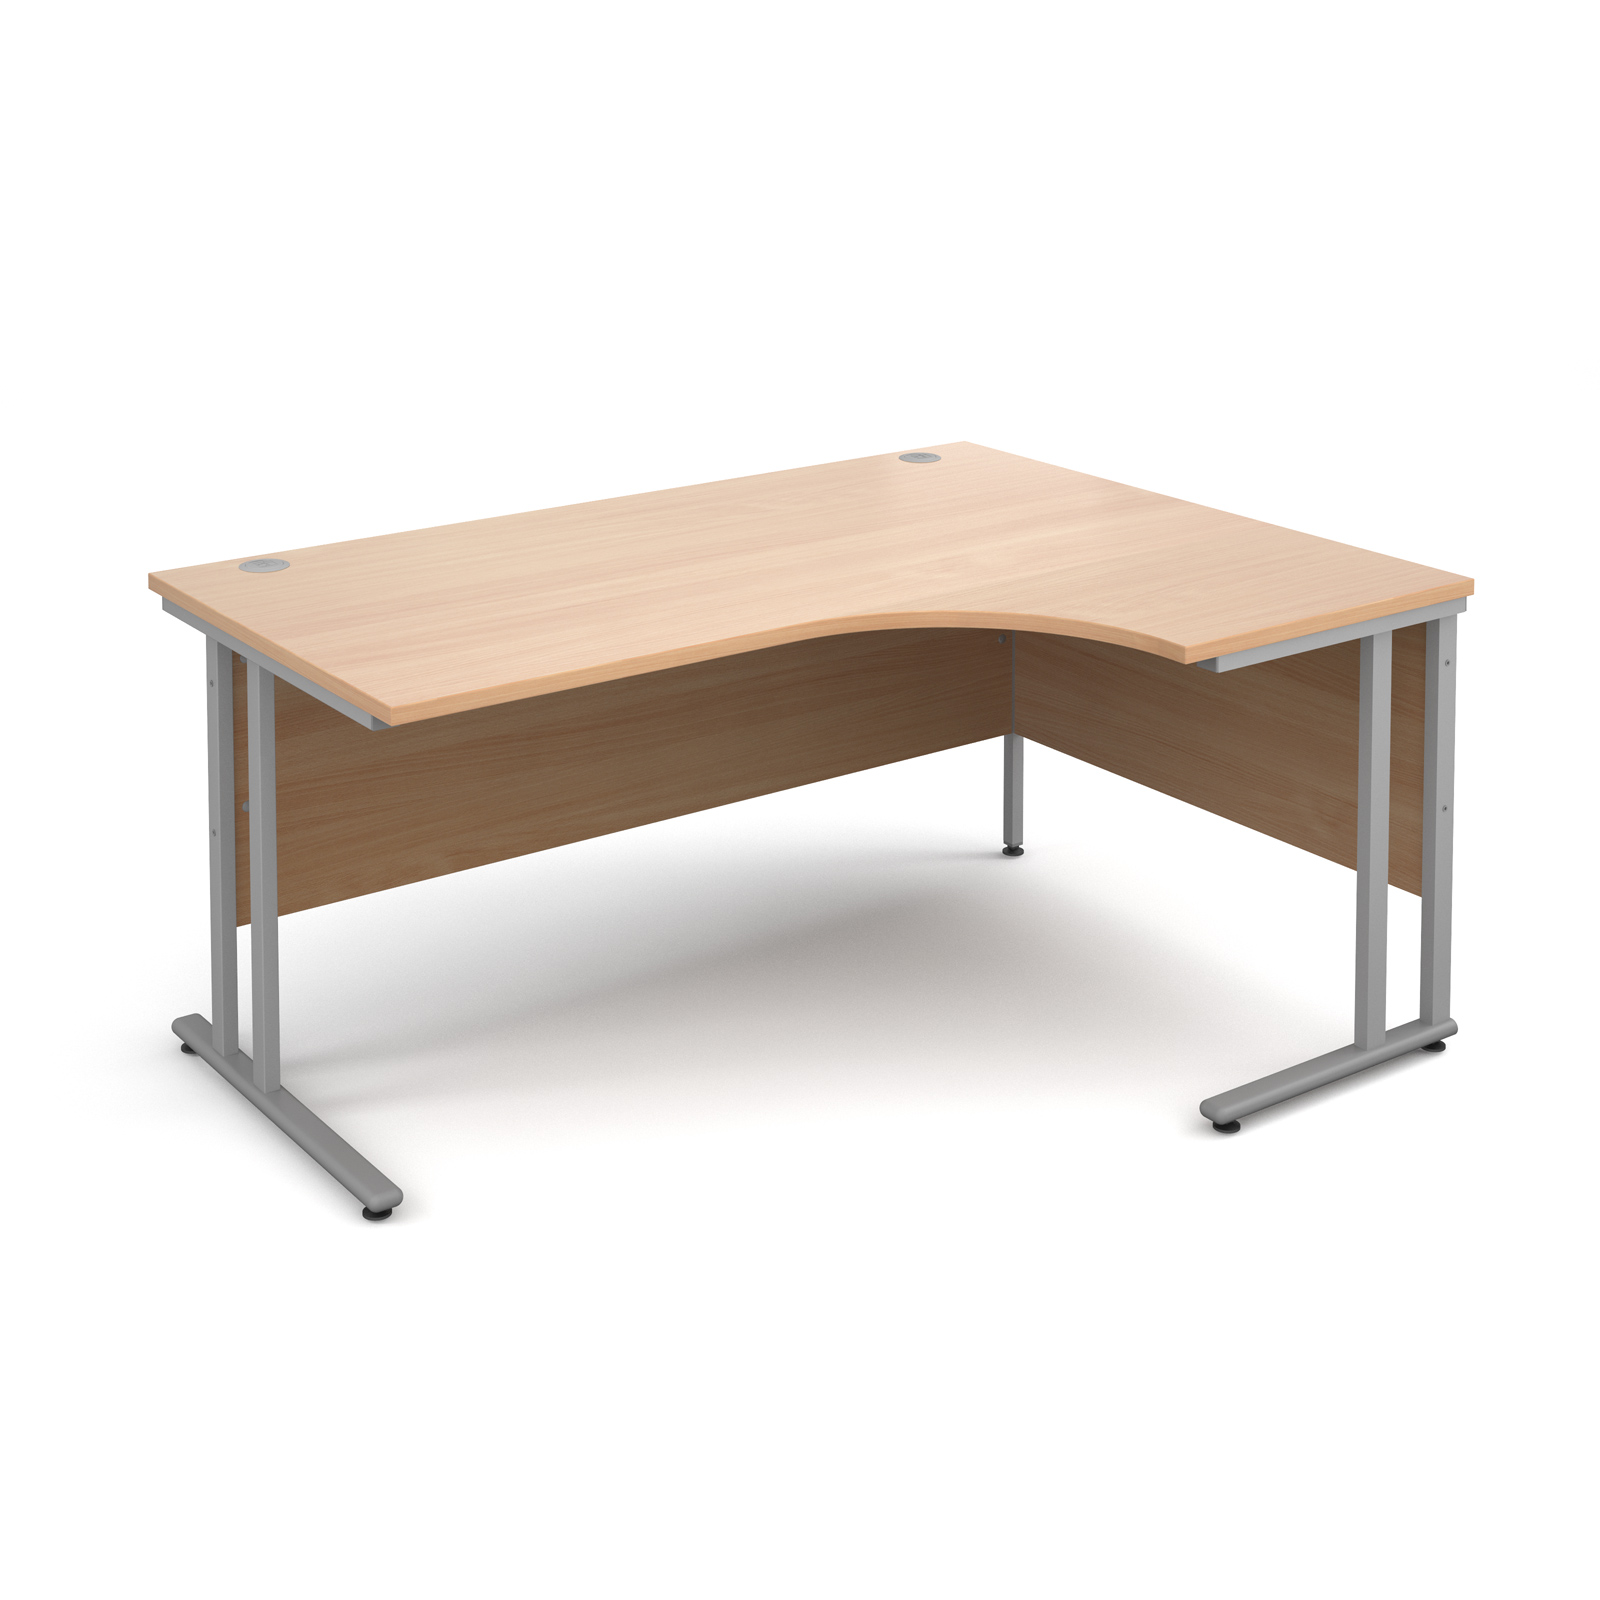 Maestro 25 SL Right Hand Ergonomic Desk 1600mm Silver Cantilever Frame Beech Top